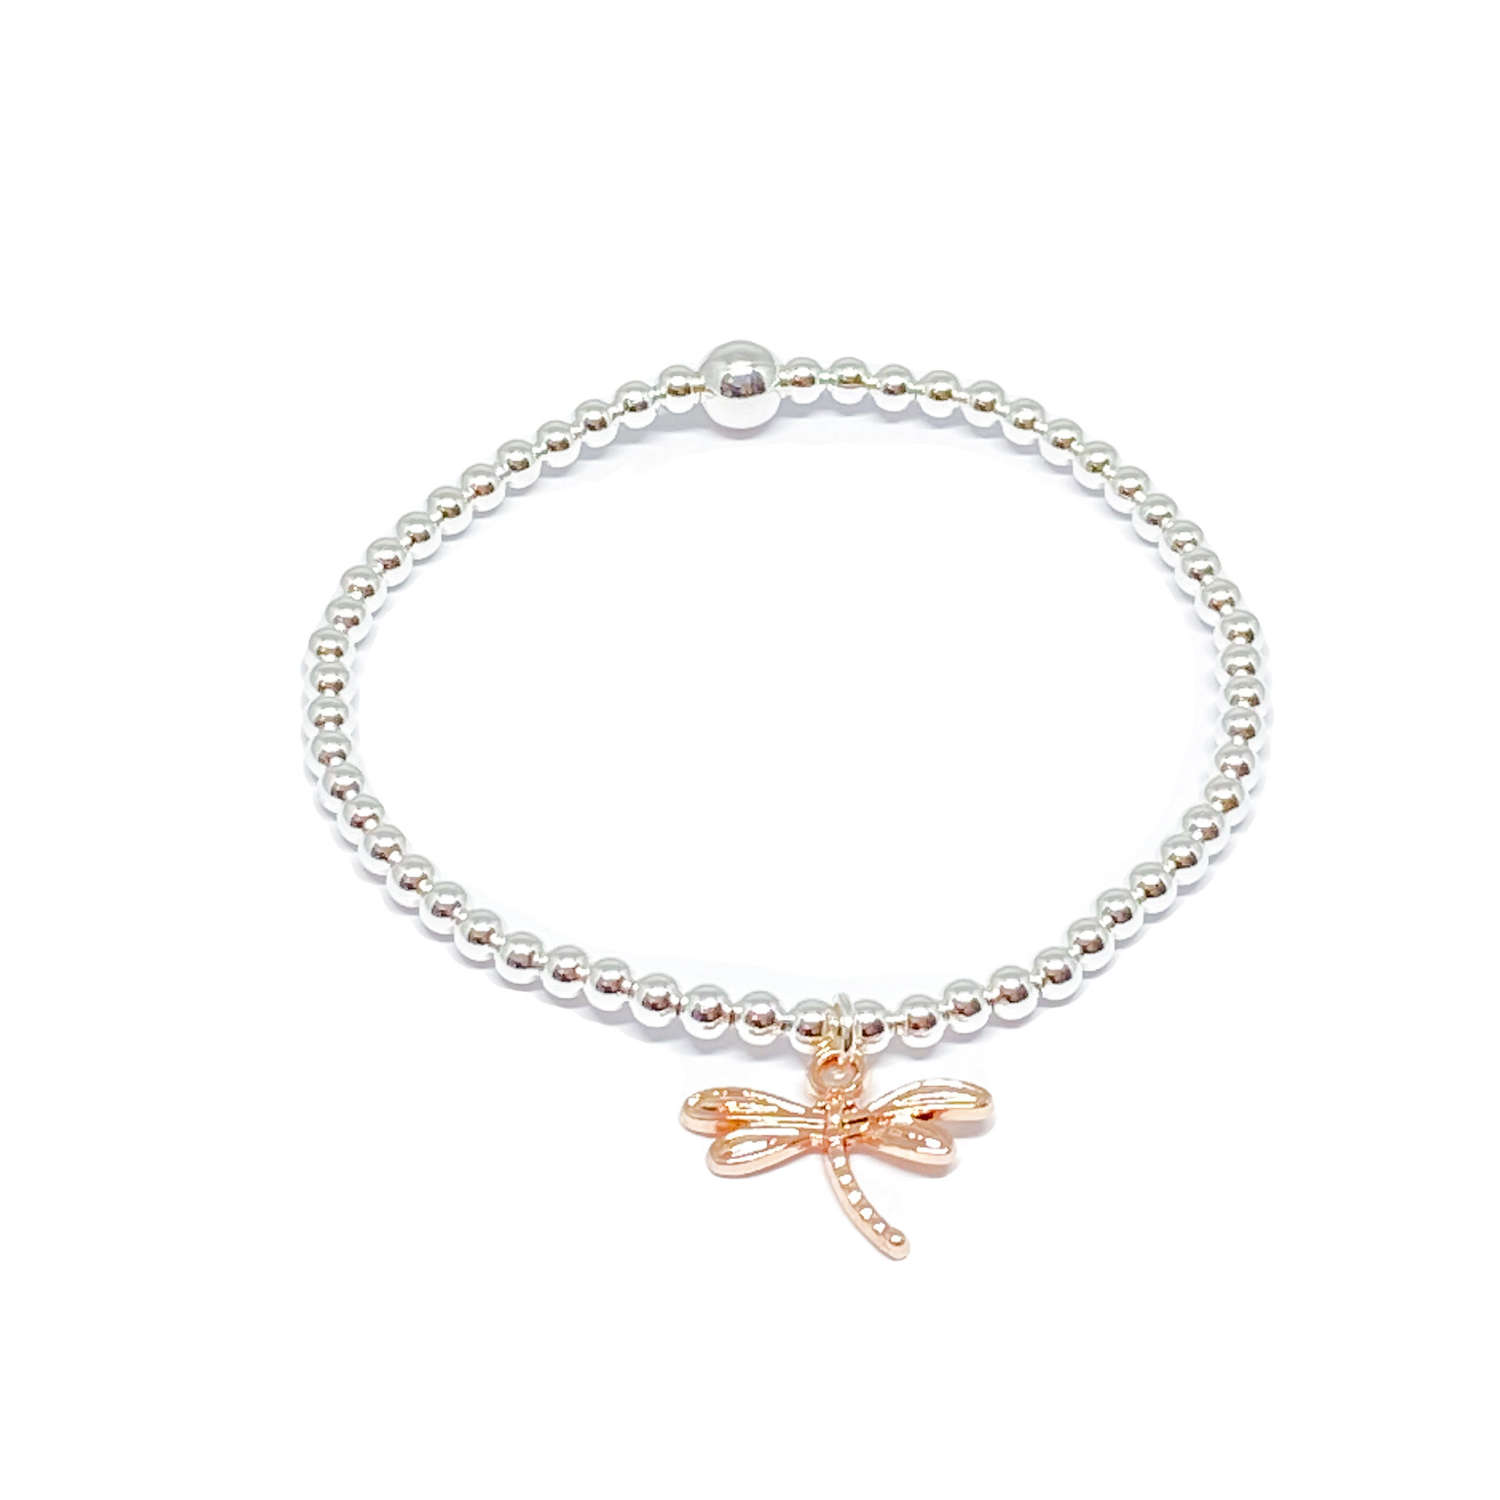 Daisy Dragonfly Bracelet - Rose Gold